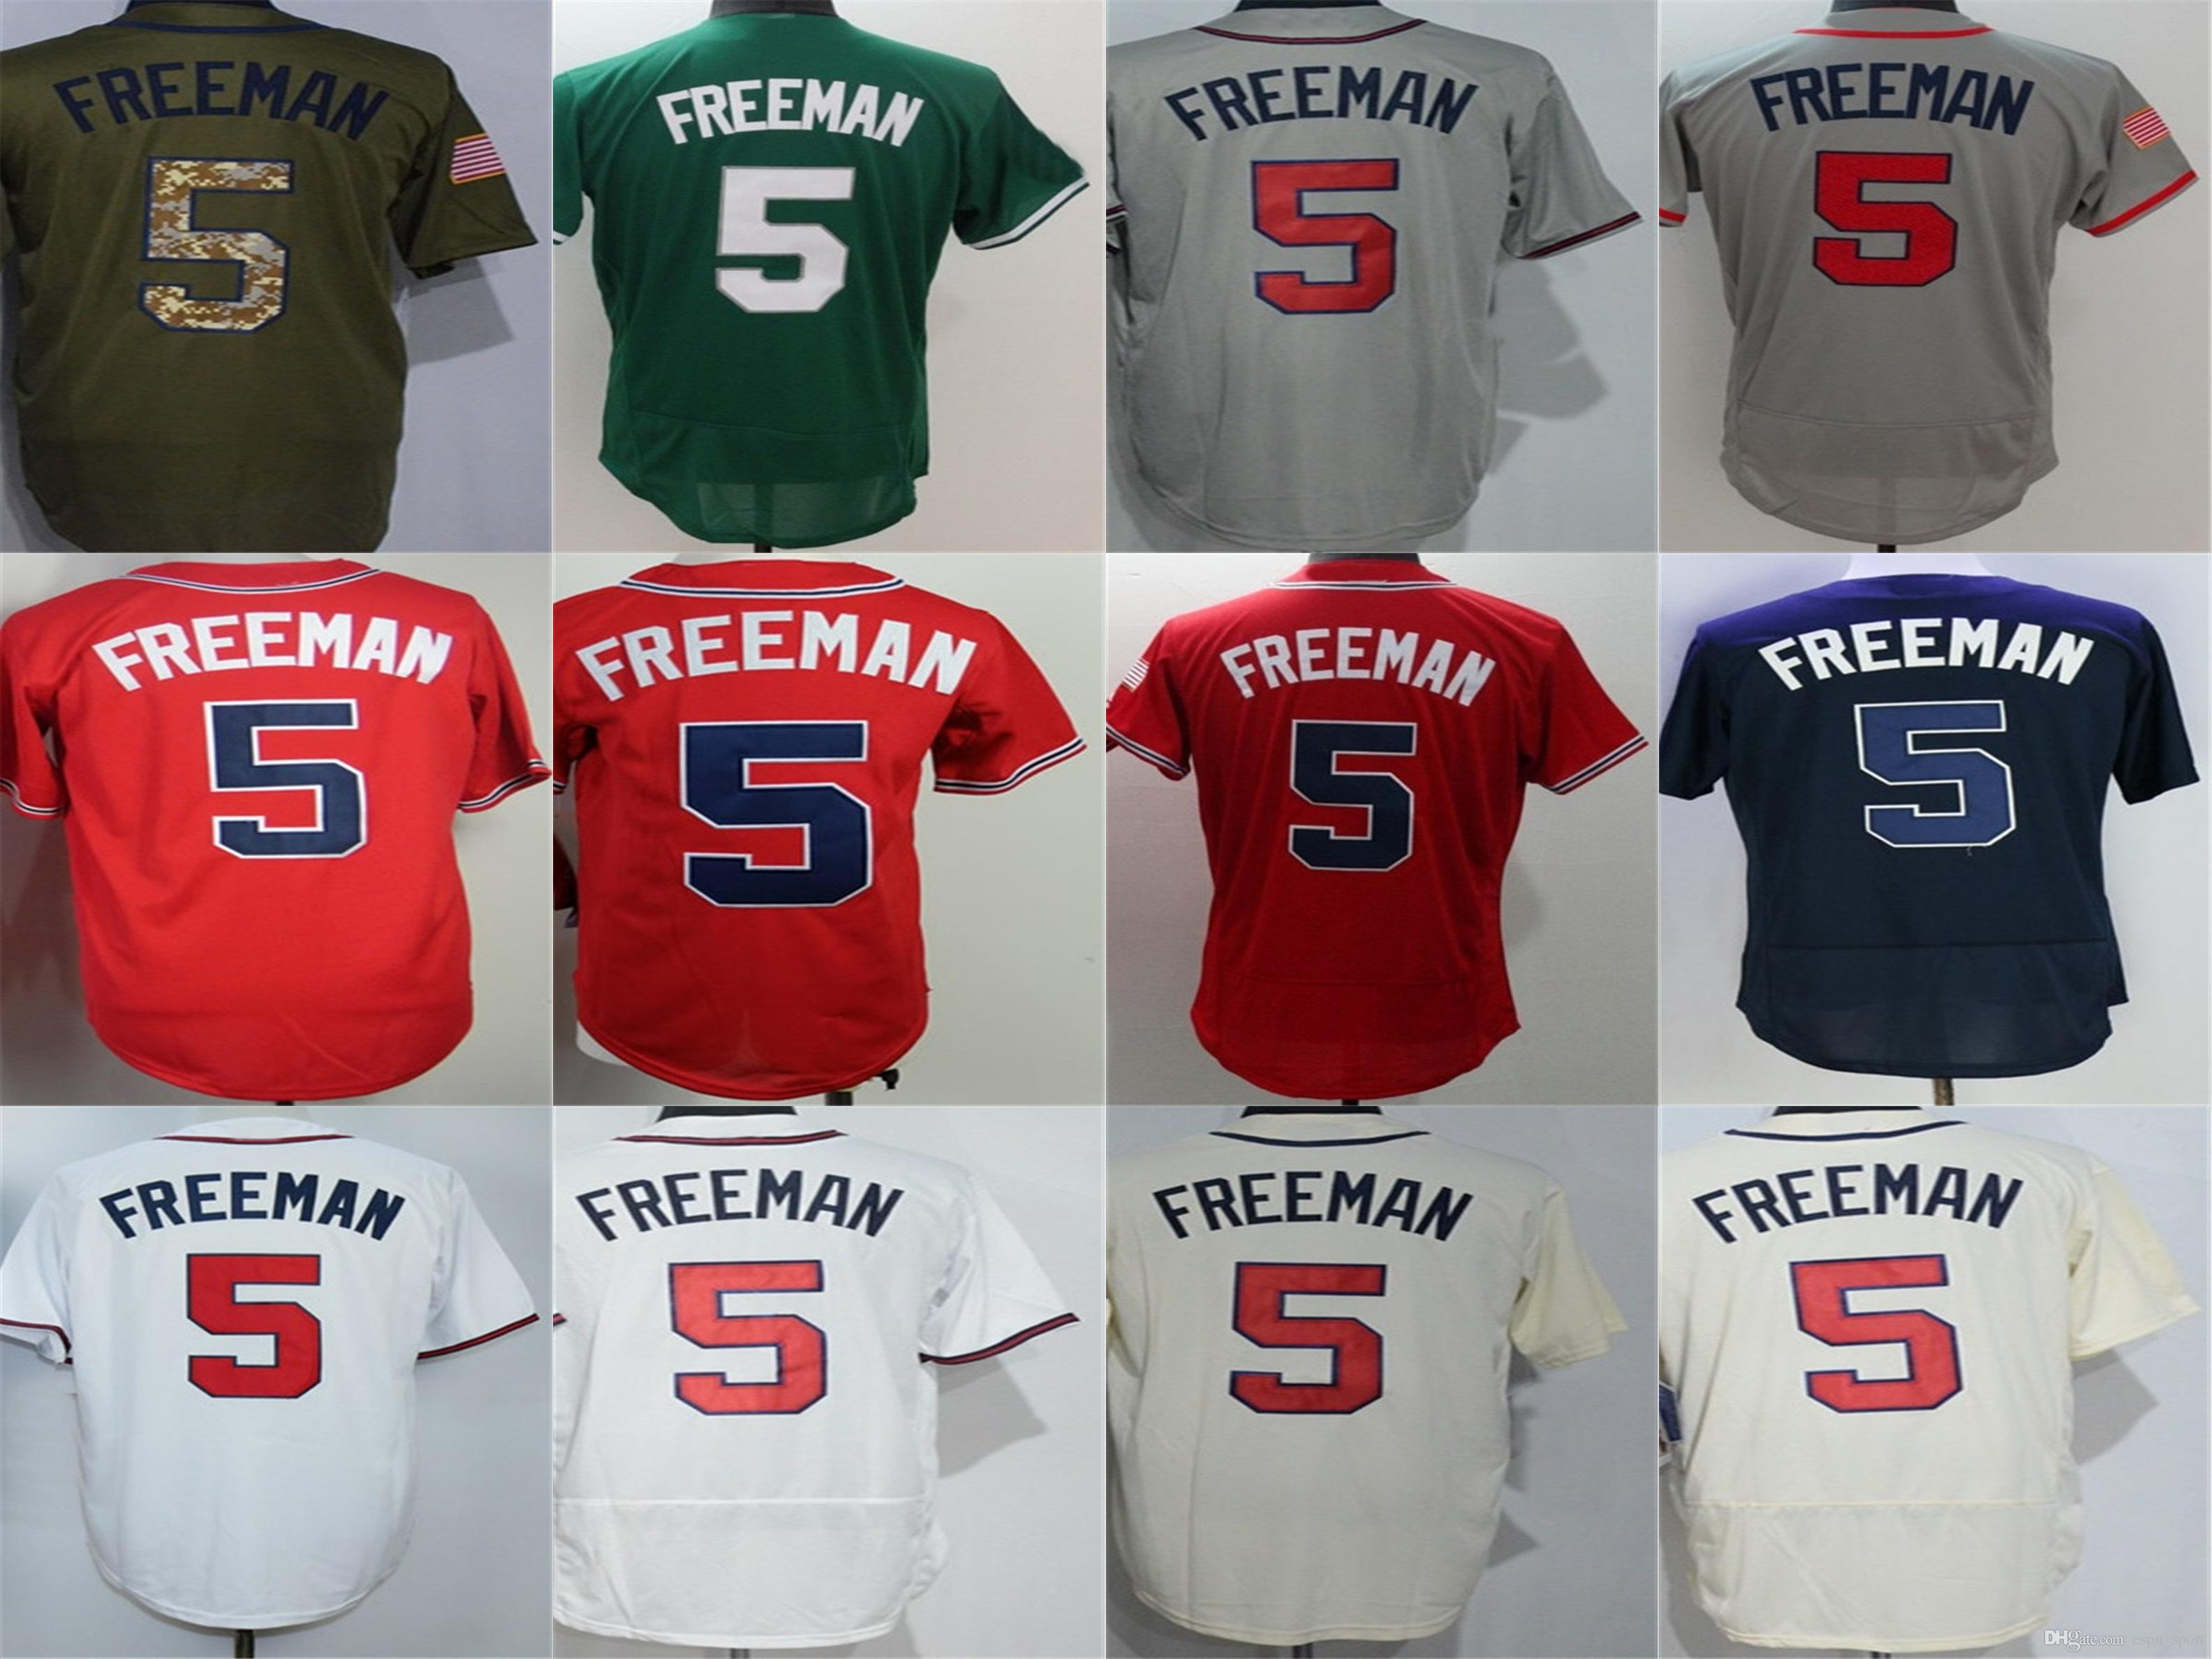 4effdd440 Mens Womens Kids Toddlers Atlanta Jersey 2017 New 5 Freddie Freeman Flex  Base Cool Base Blue Beige White Green Red Grey Baseball Jerseys 5 Freddie  Freeman ...